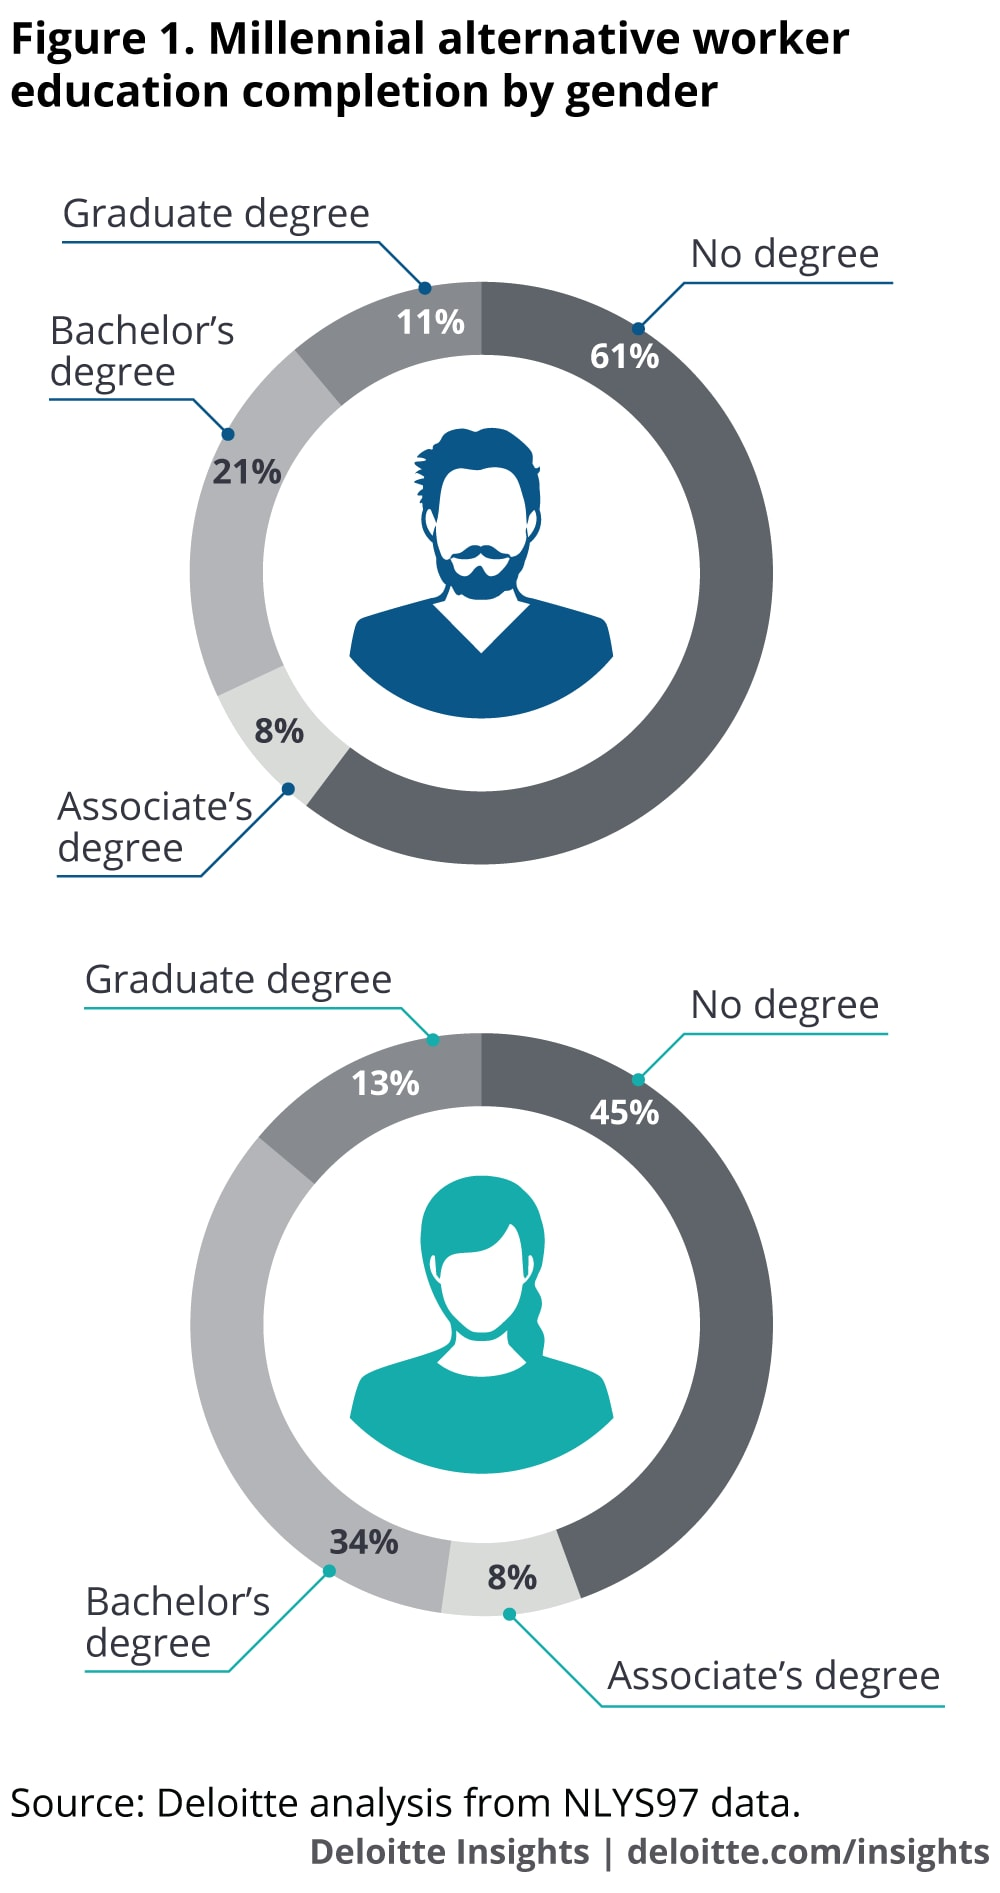 Millennial alternative worker education completion by gender